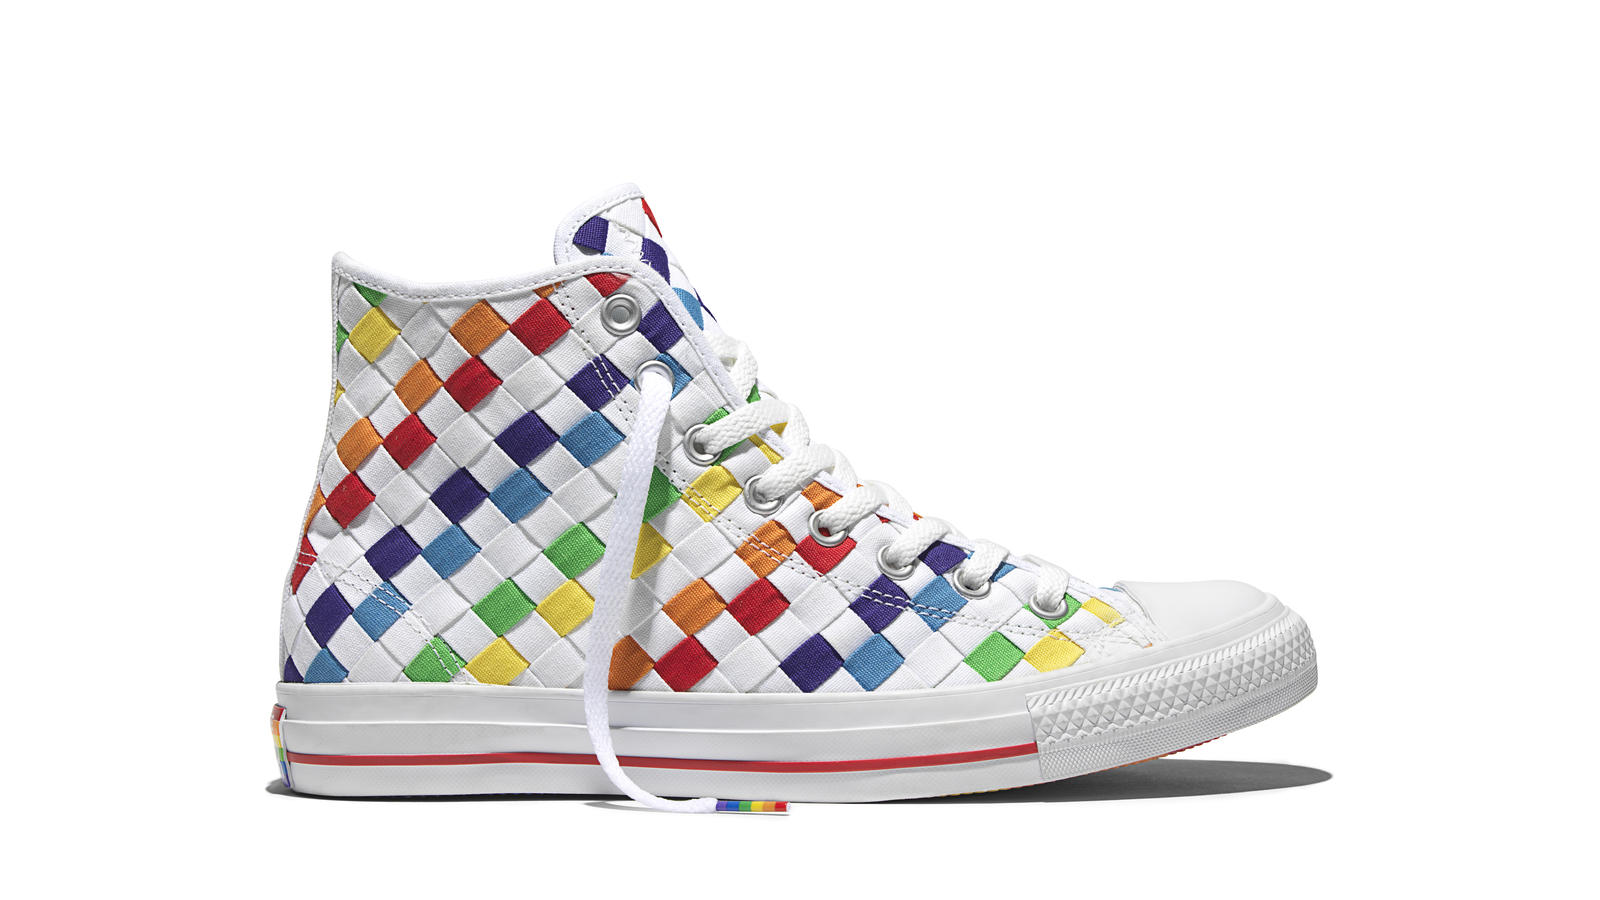 ... chuck taylor all star hi top lgbt gay pride rainbow white 157375c 1d5f3  low price the 2016 converse pride collection celebrates the creativity of  all ... b32ecb7ce